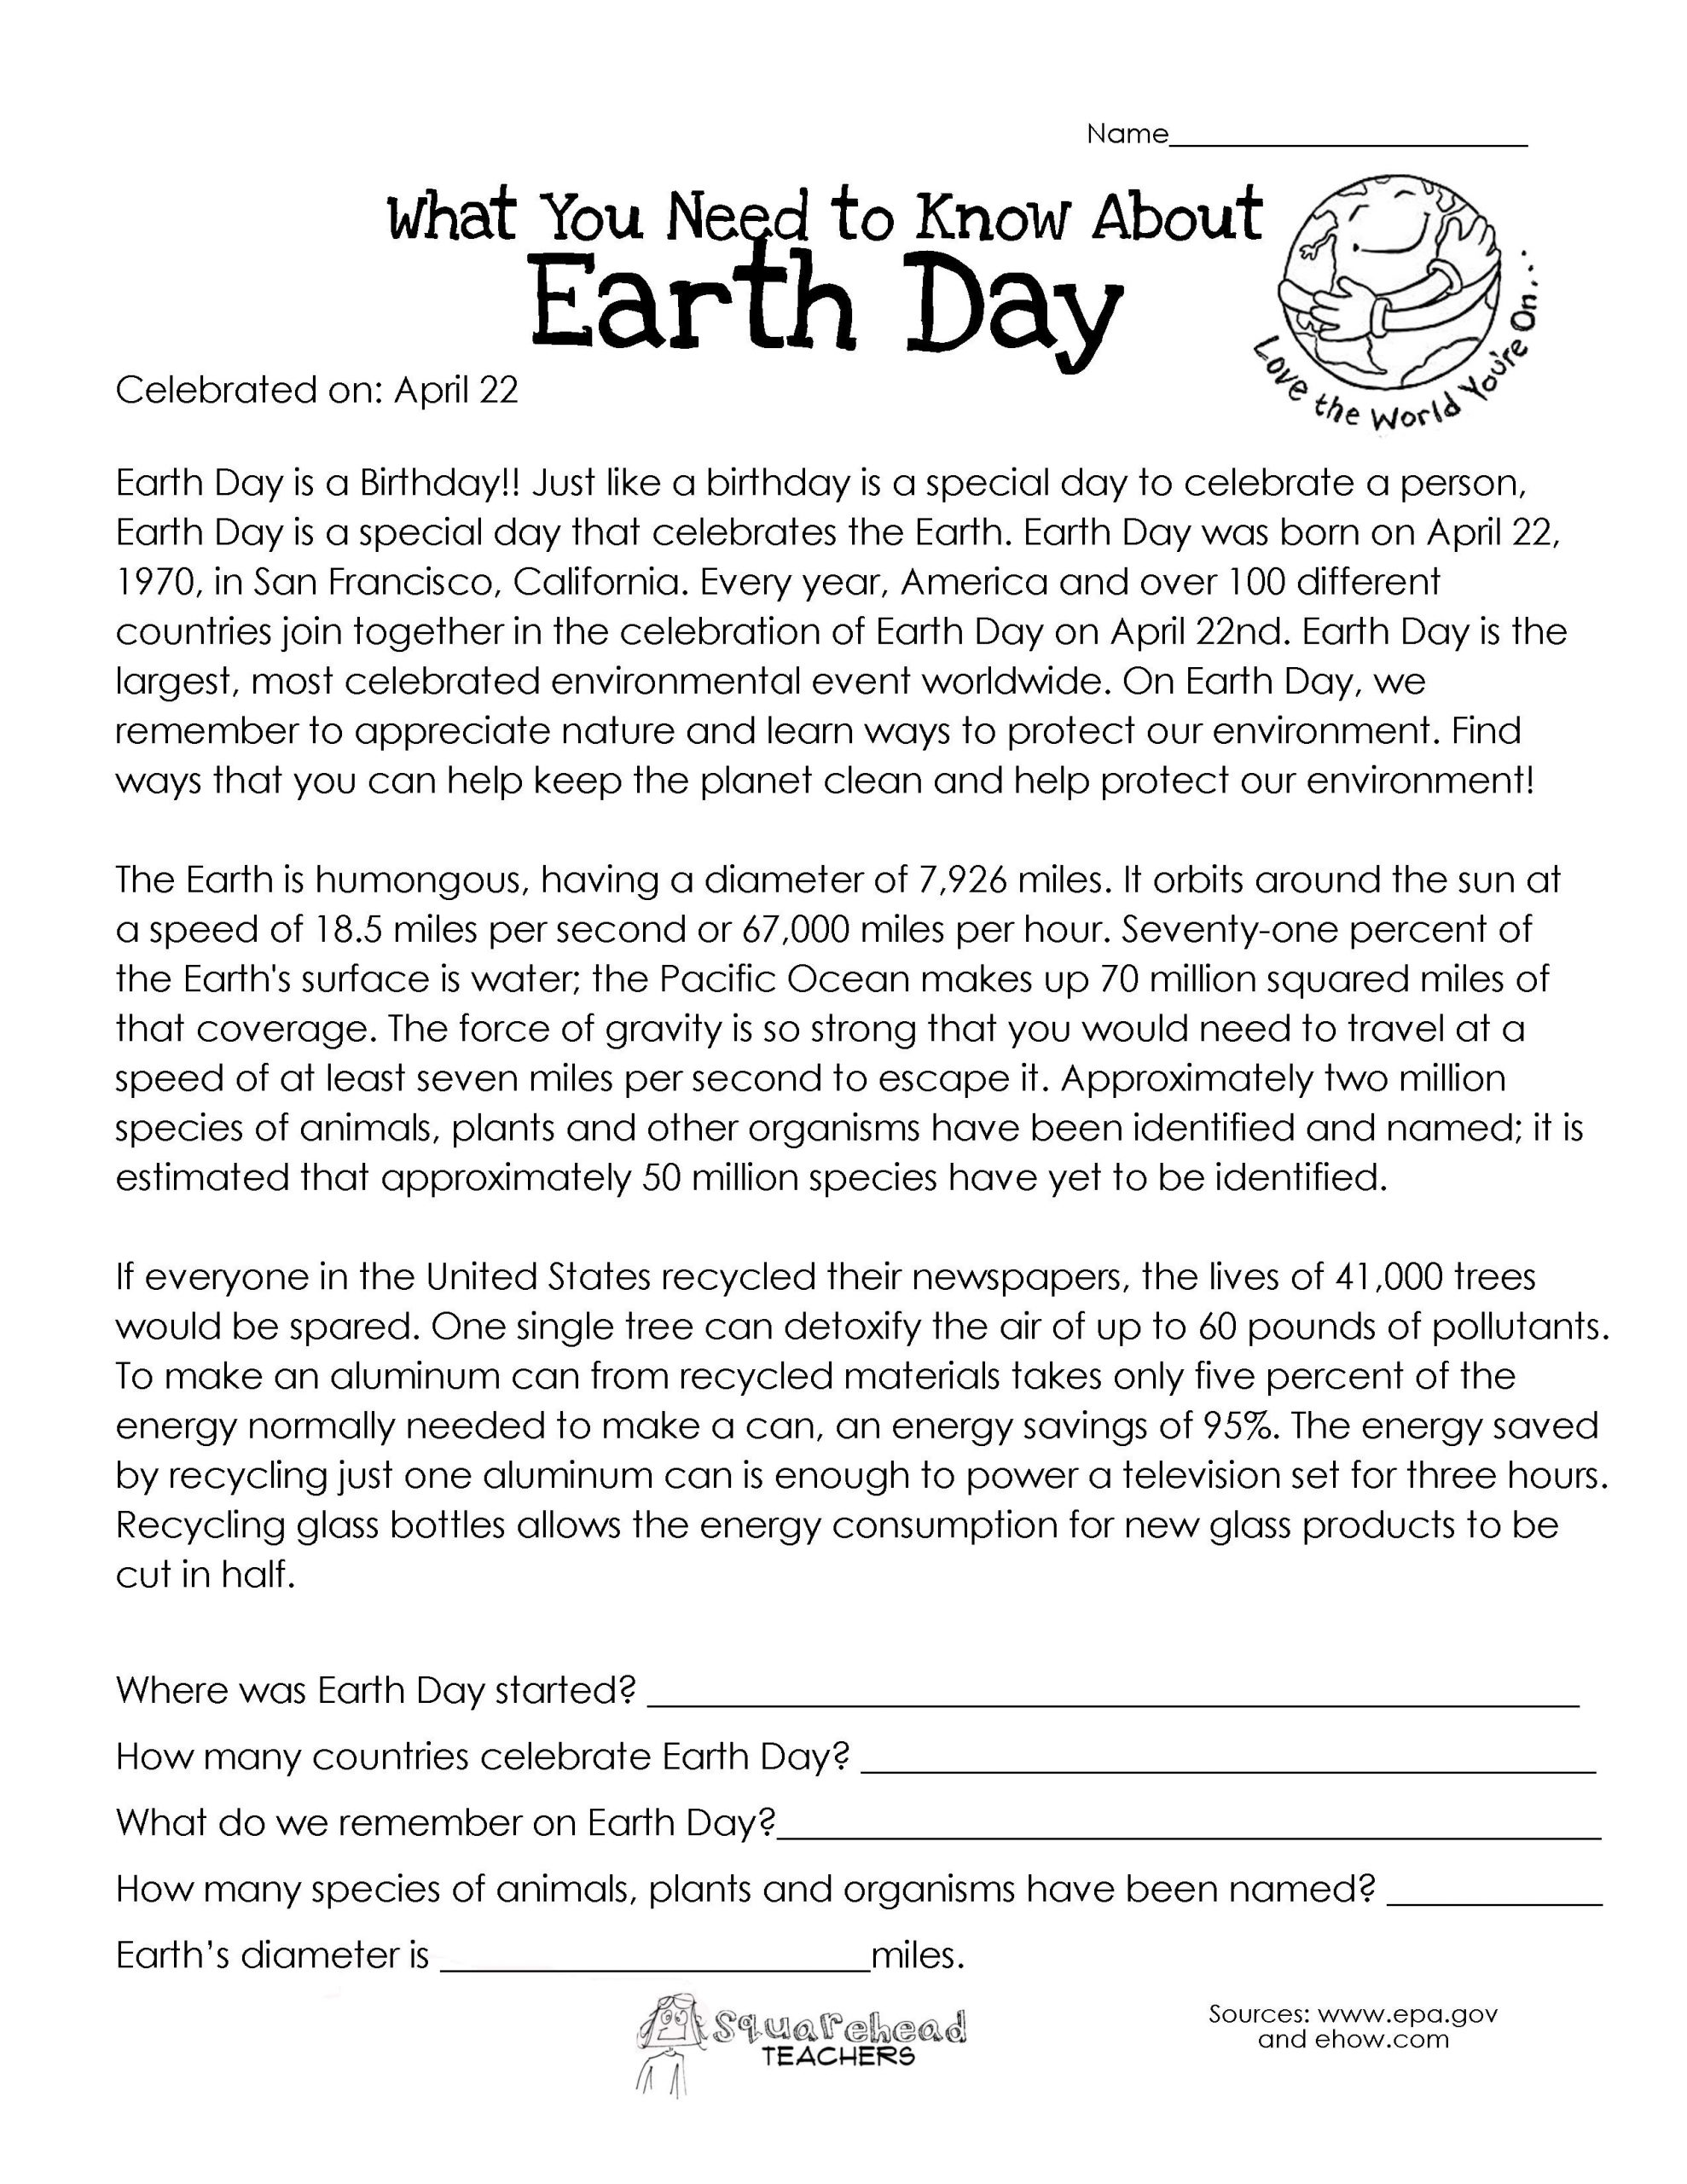 Earth Day Reading Comprehension Worksheets What You Need to Know About Earth Day